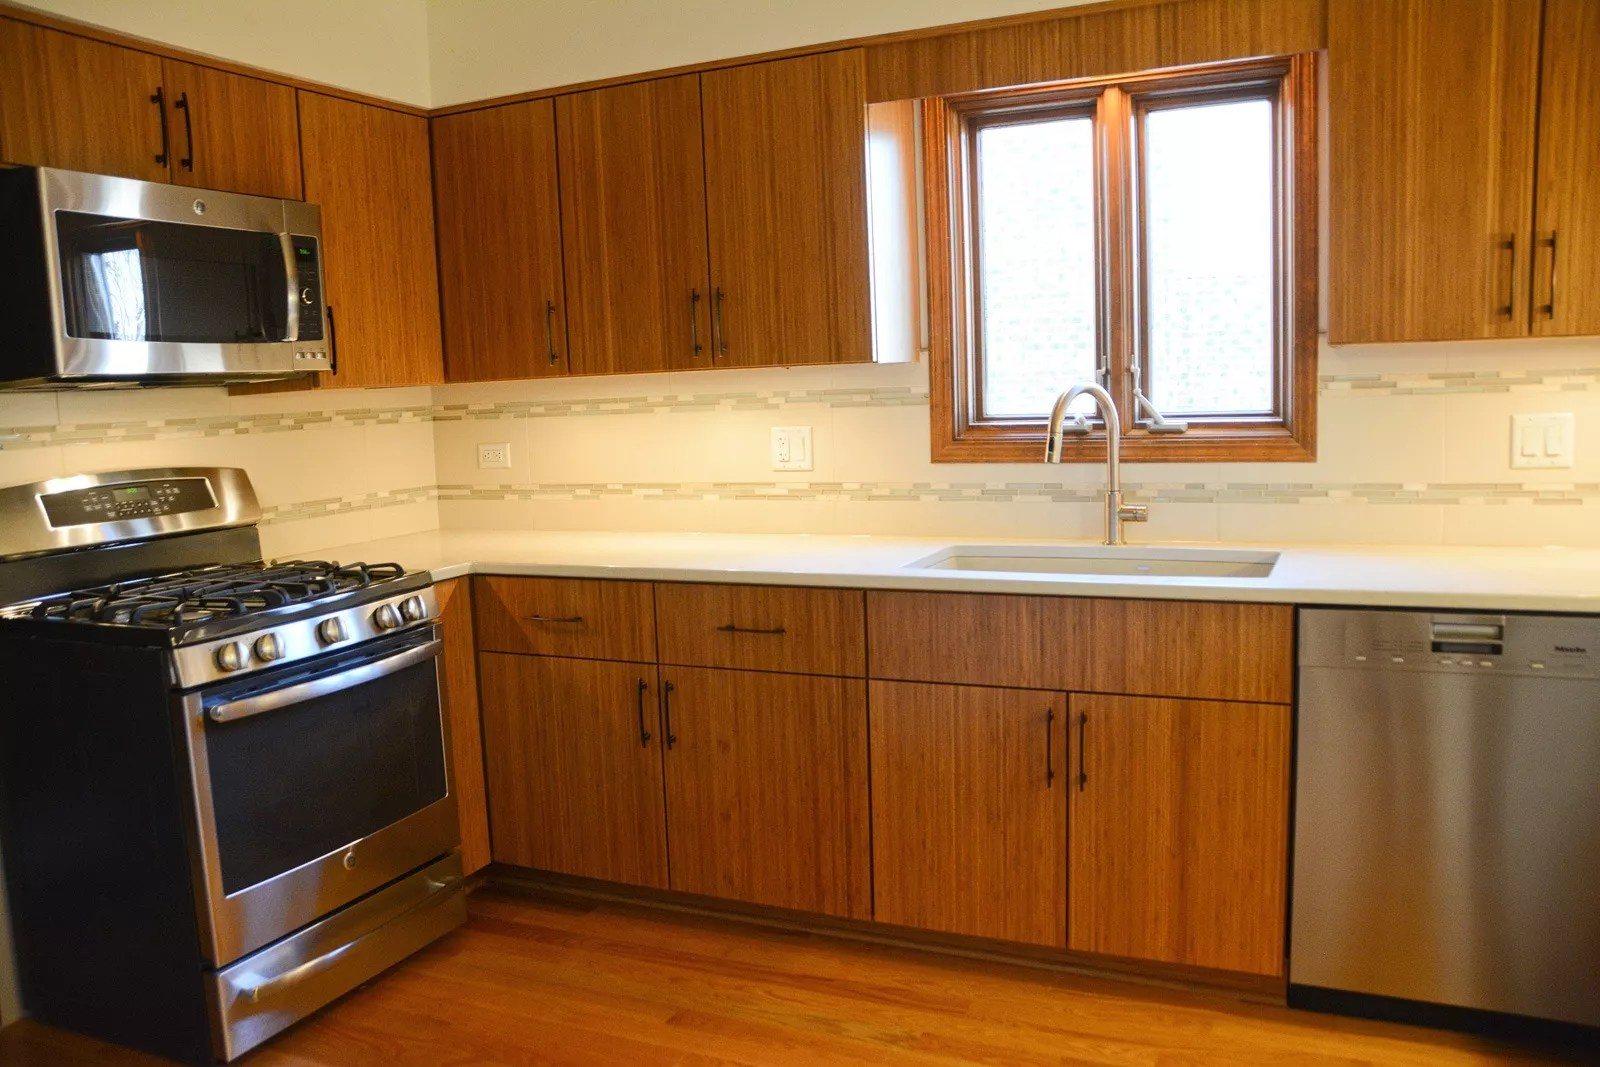 Refacing Contemporary Bamboo Cabinet Doors Photo Gallery